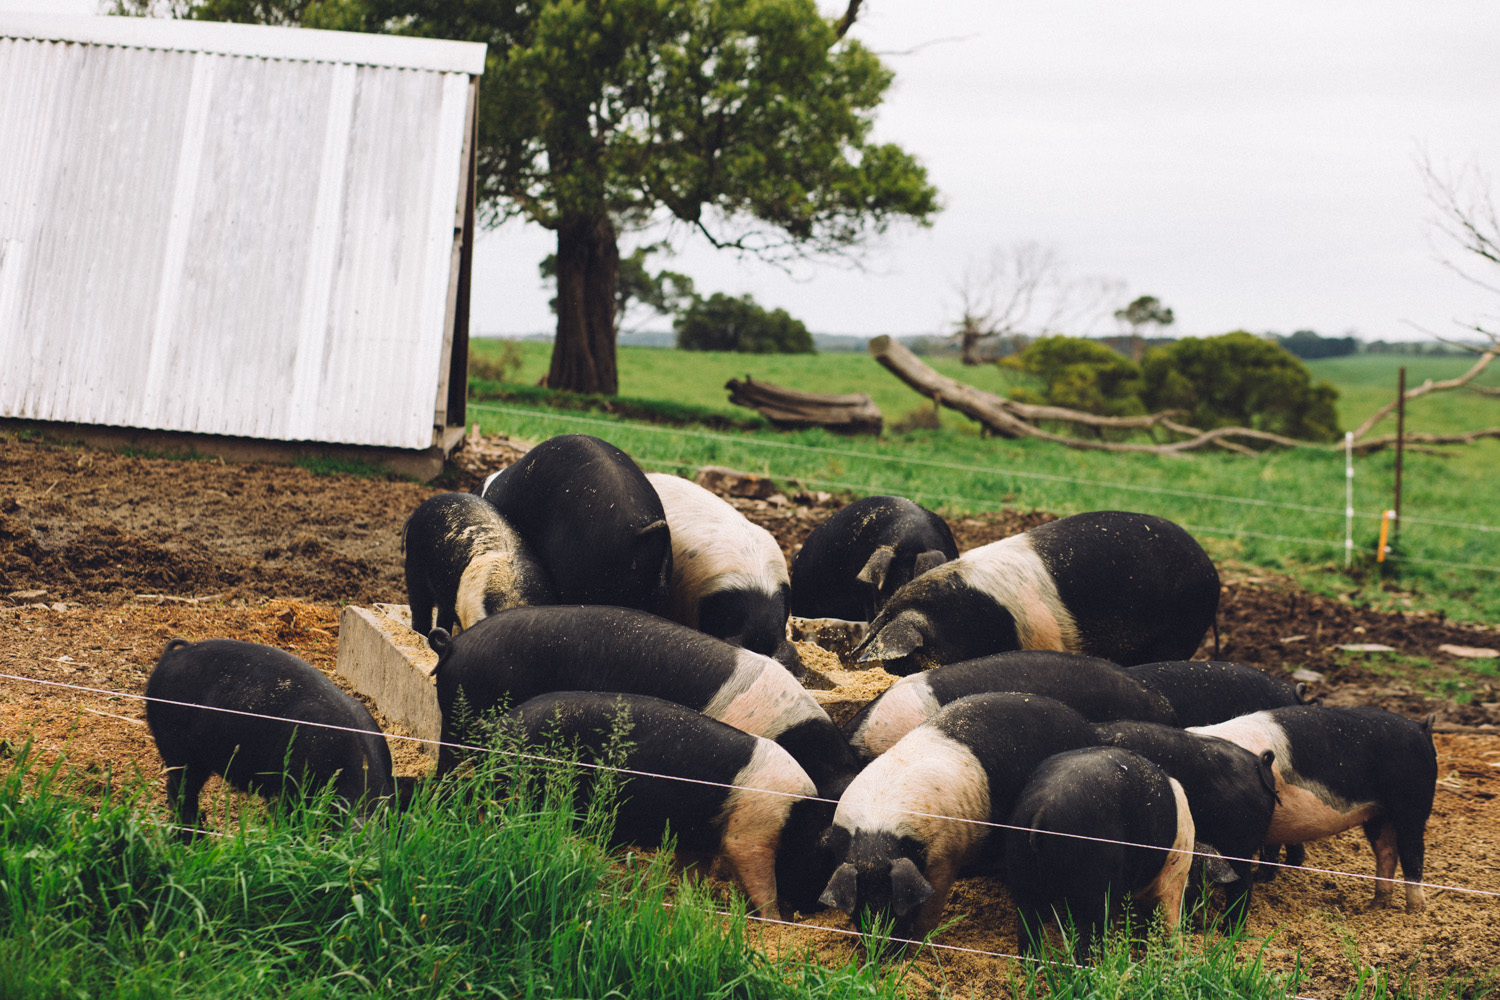 Pigs foraging for food at Amber Creek Farm, Fish Creek, 2016. Source: Museums Victoria, Photograph: Catherine Forge